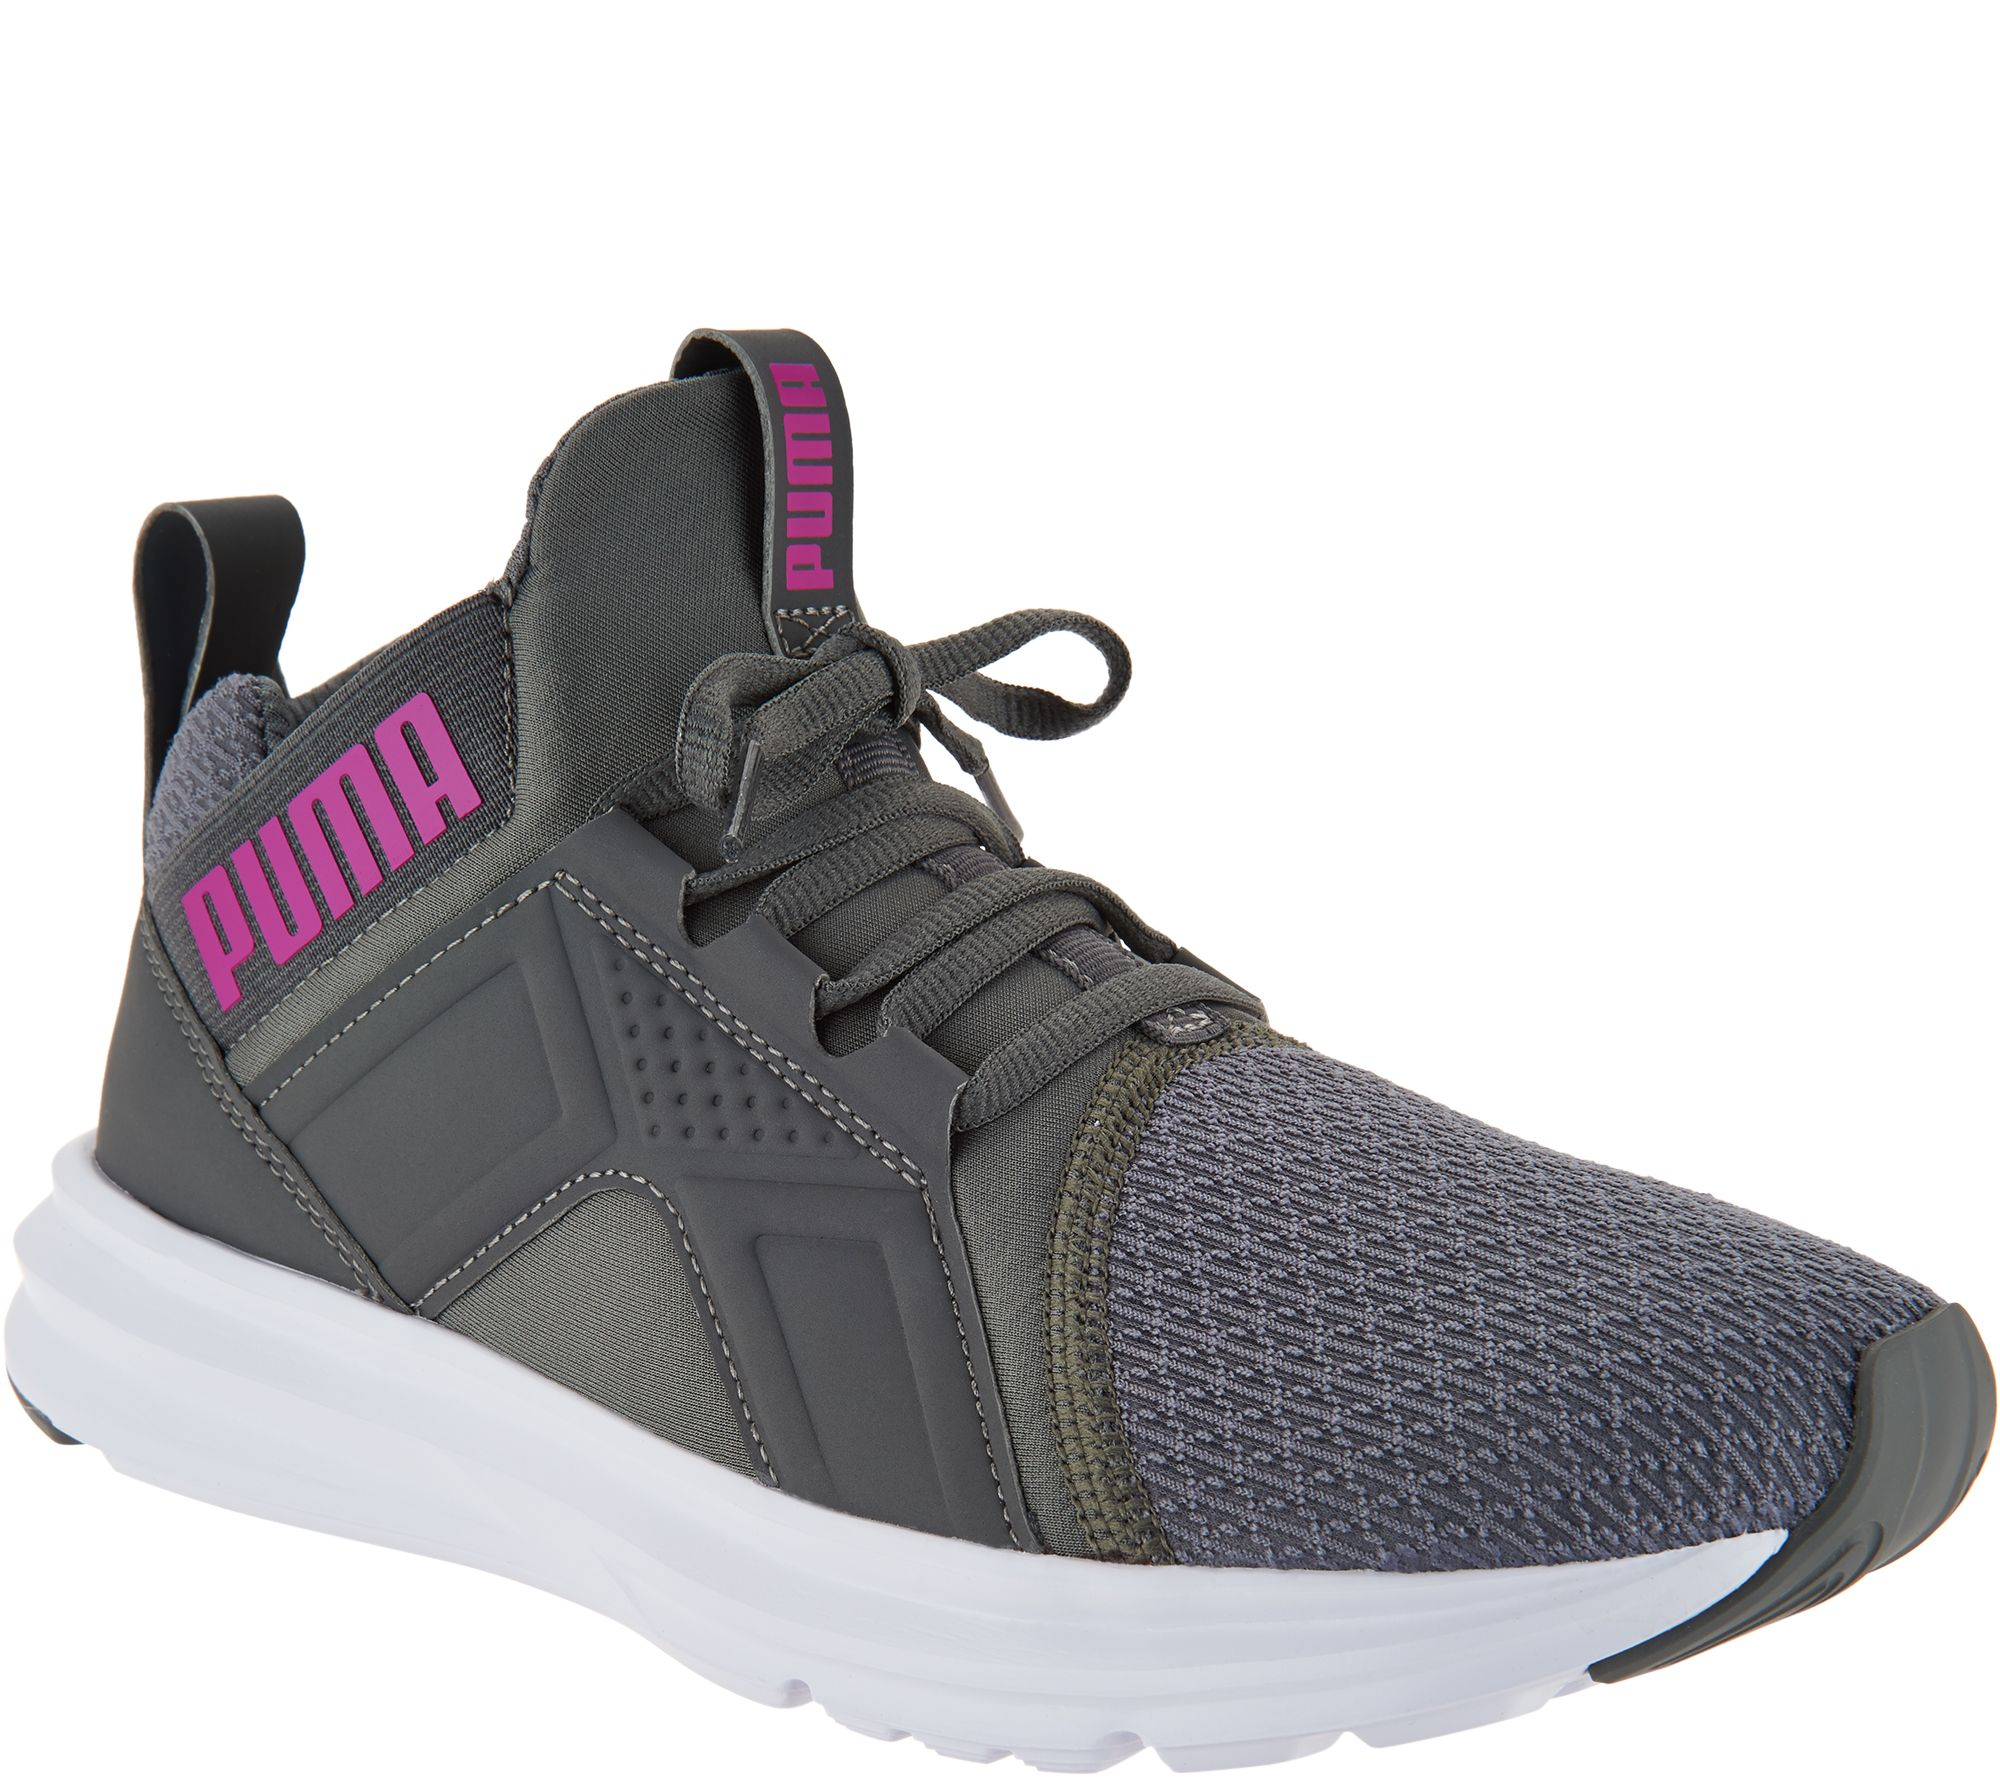 PUMA Mesh Mid Lace-up Sneakers - Enzo - Page 1 — QVC.com 607f8eb47